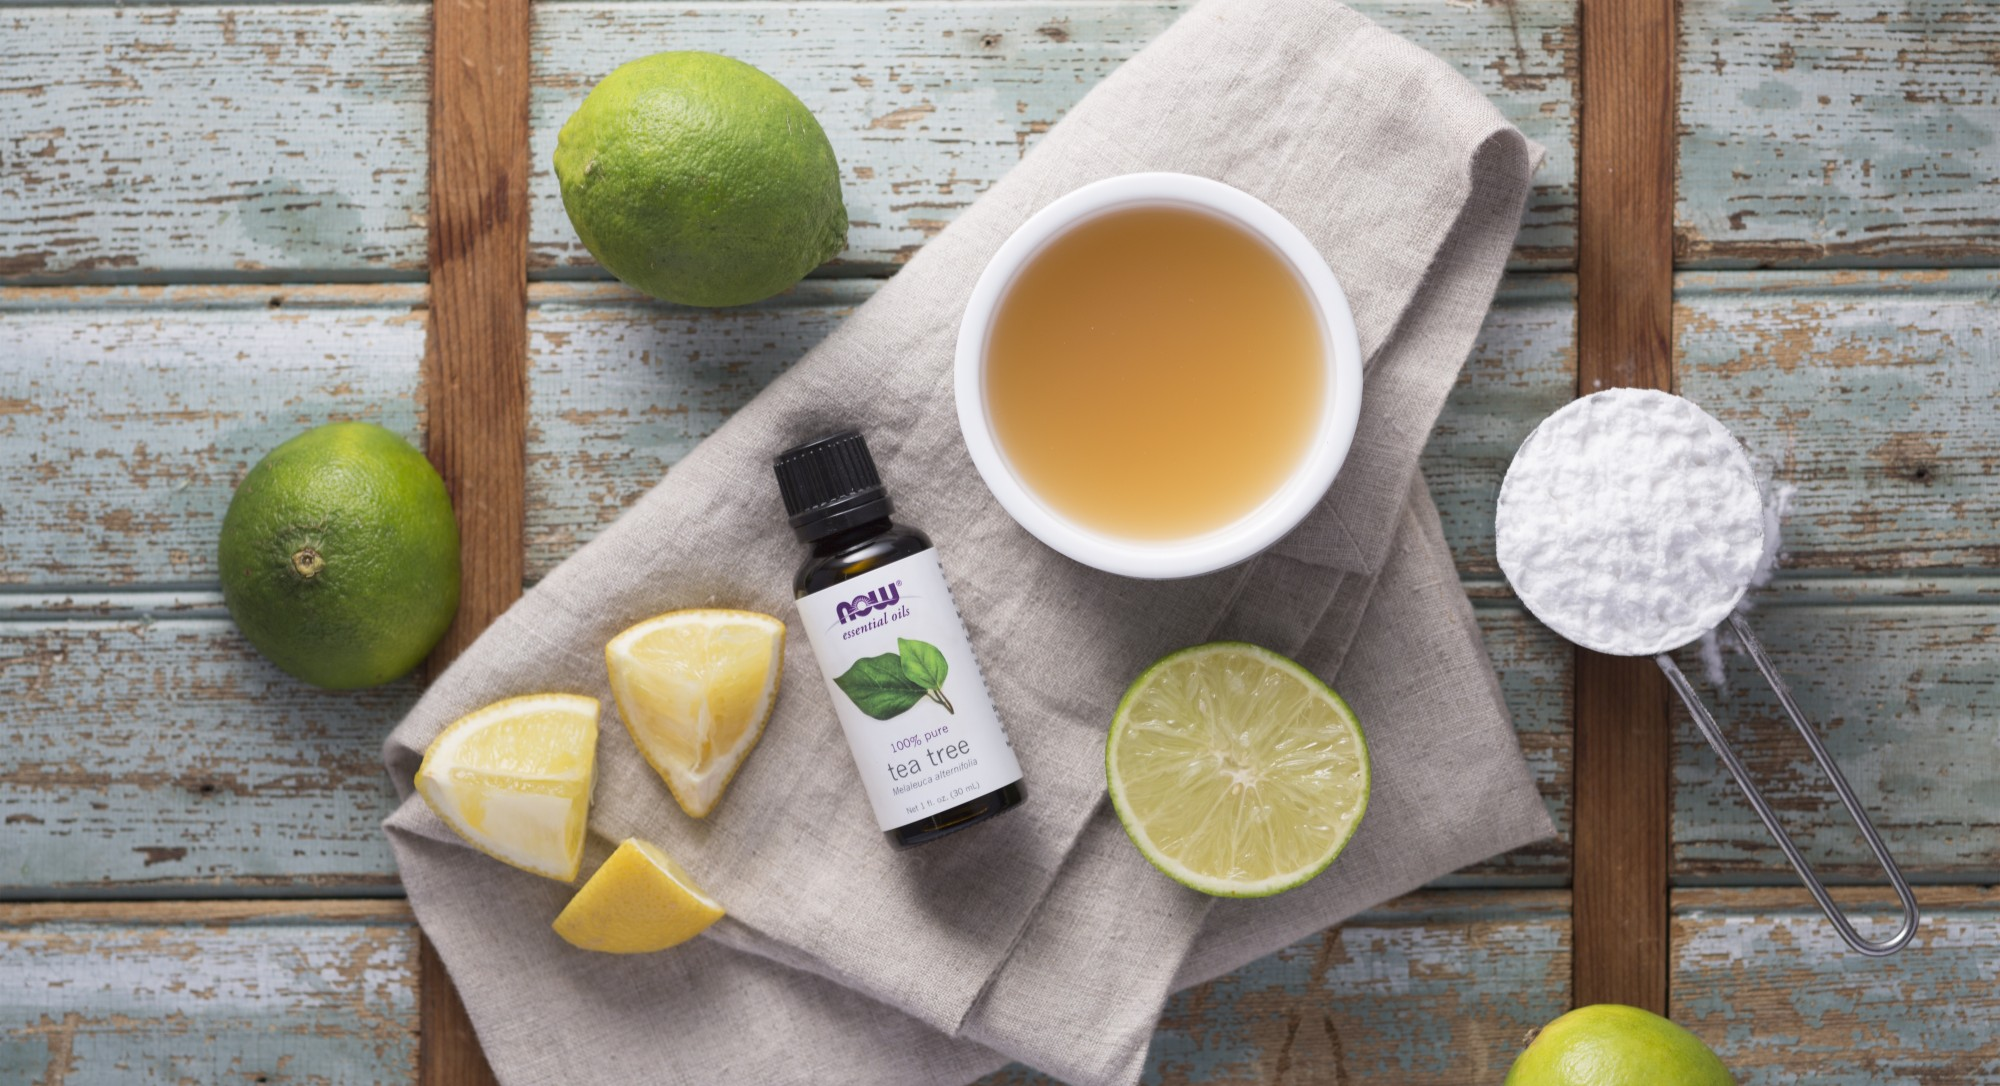 Deodorant DIY: Try These 6 Natural Solutions to Keep You Fresh